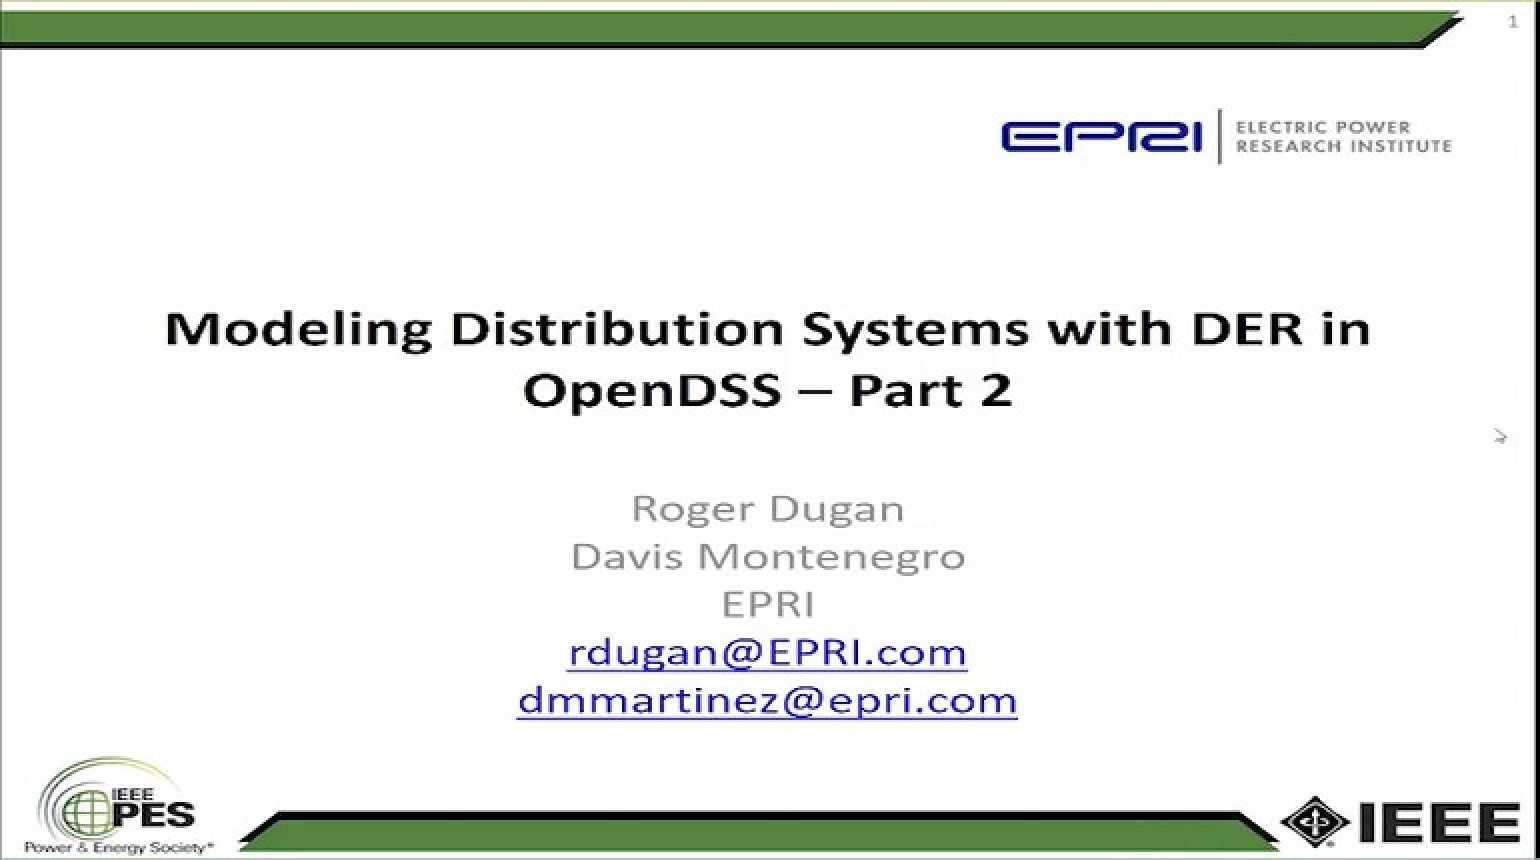 Introduction to OpenDSS Parallel Machine - Parallel Processing with OpenDSS Part 2